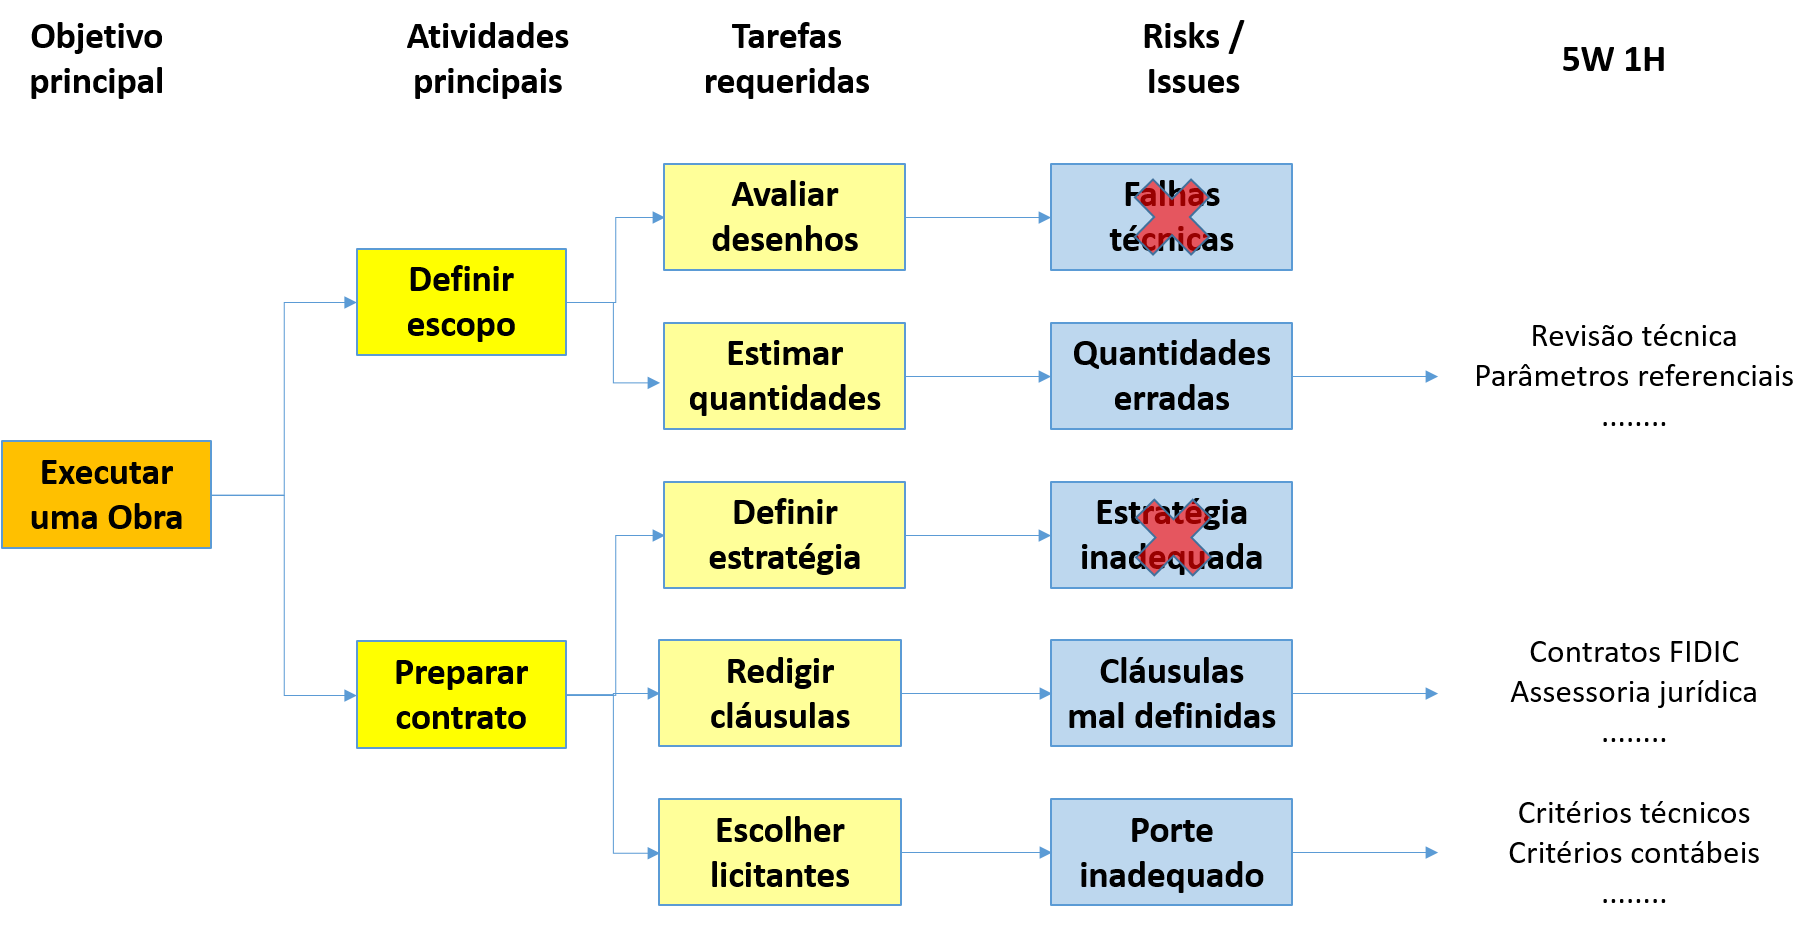 PDPC - Process Decision Program Chart